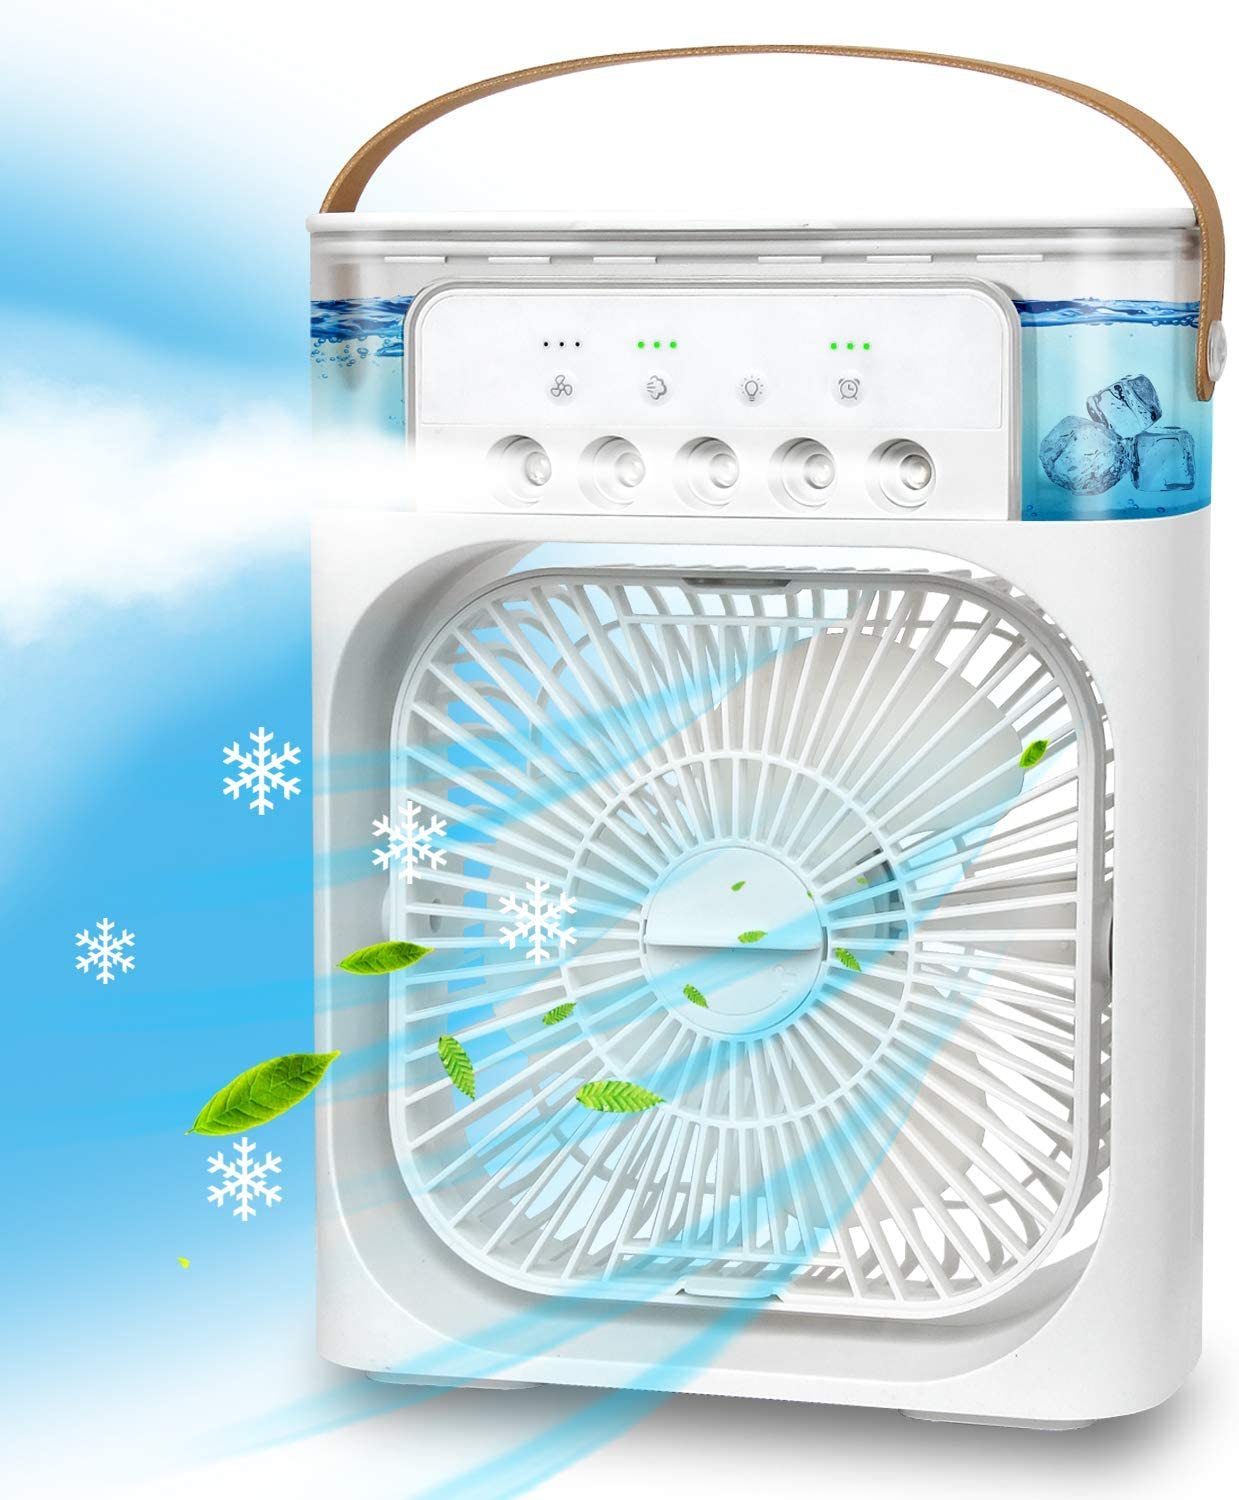 Aulink Portable Air Cooler